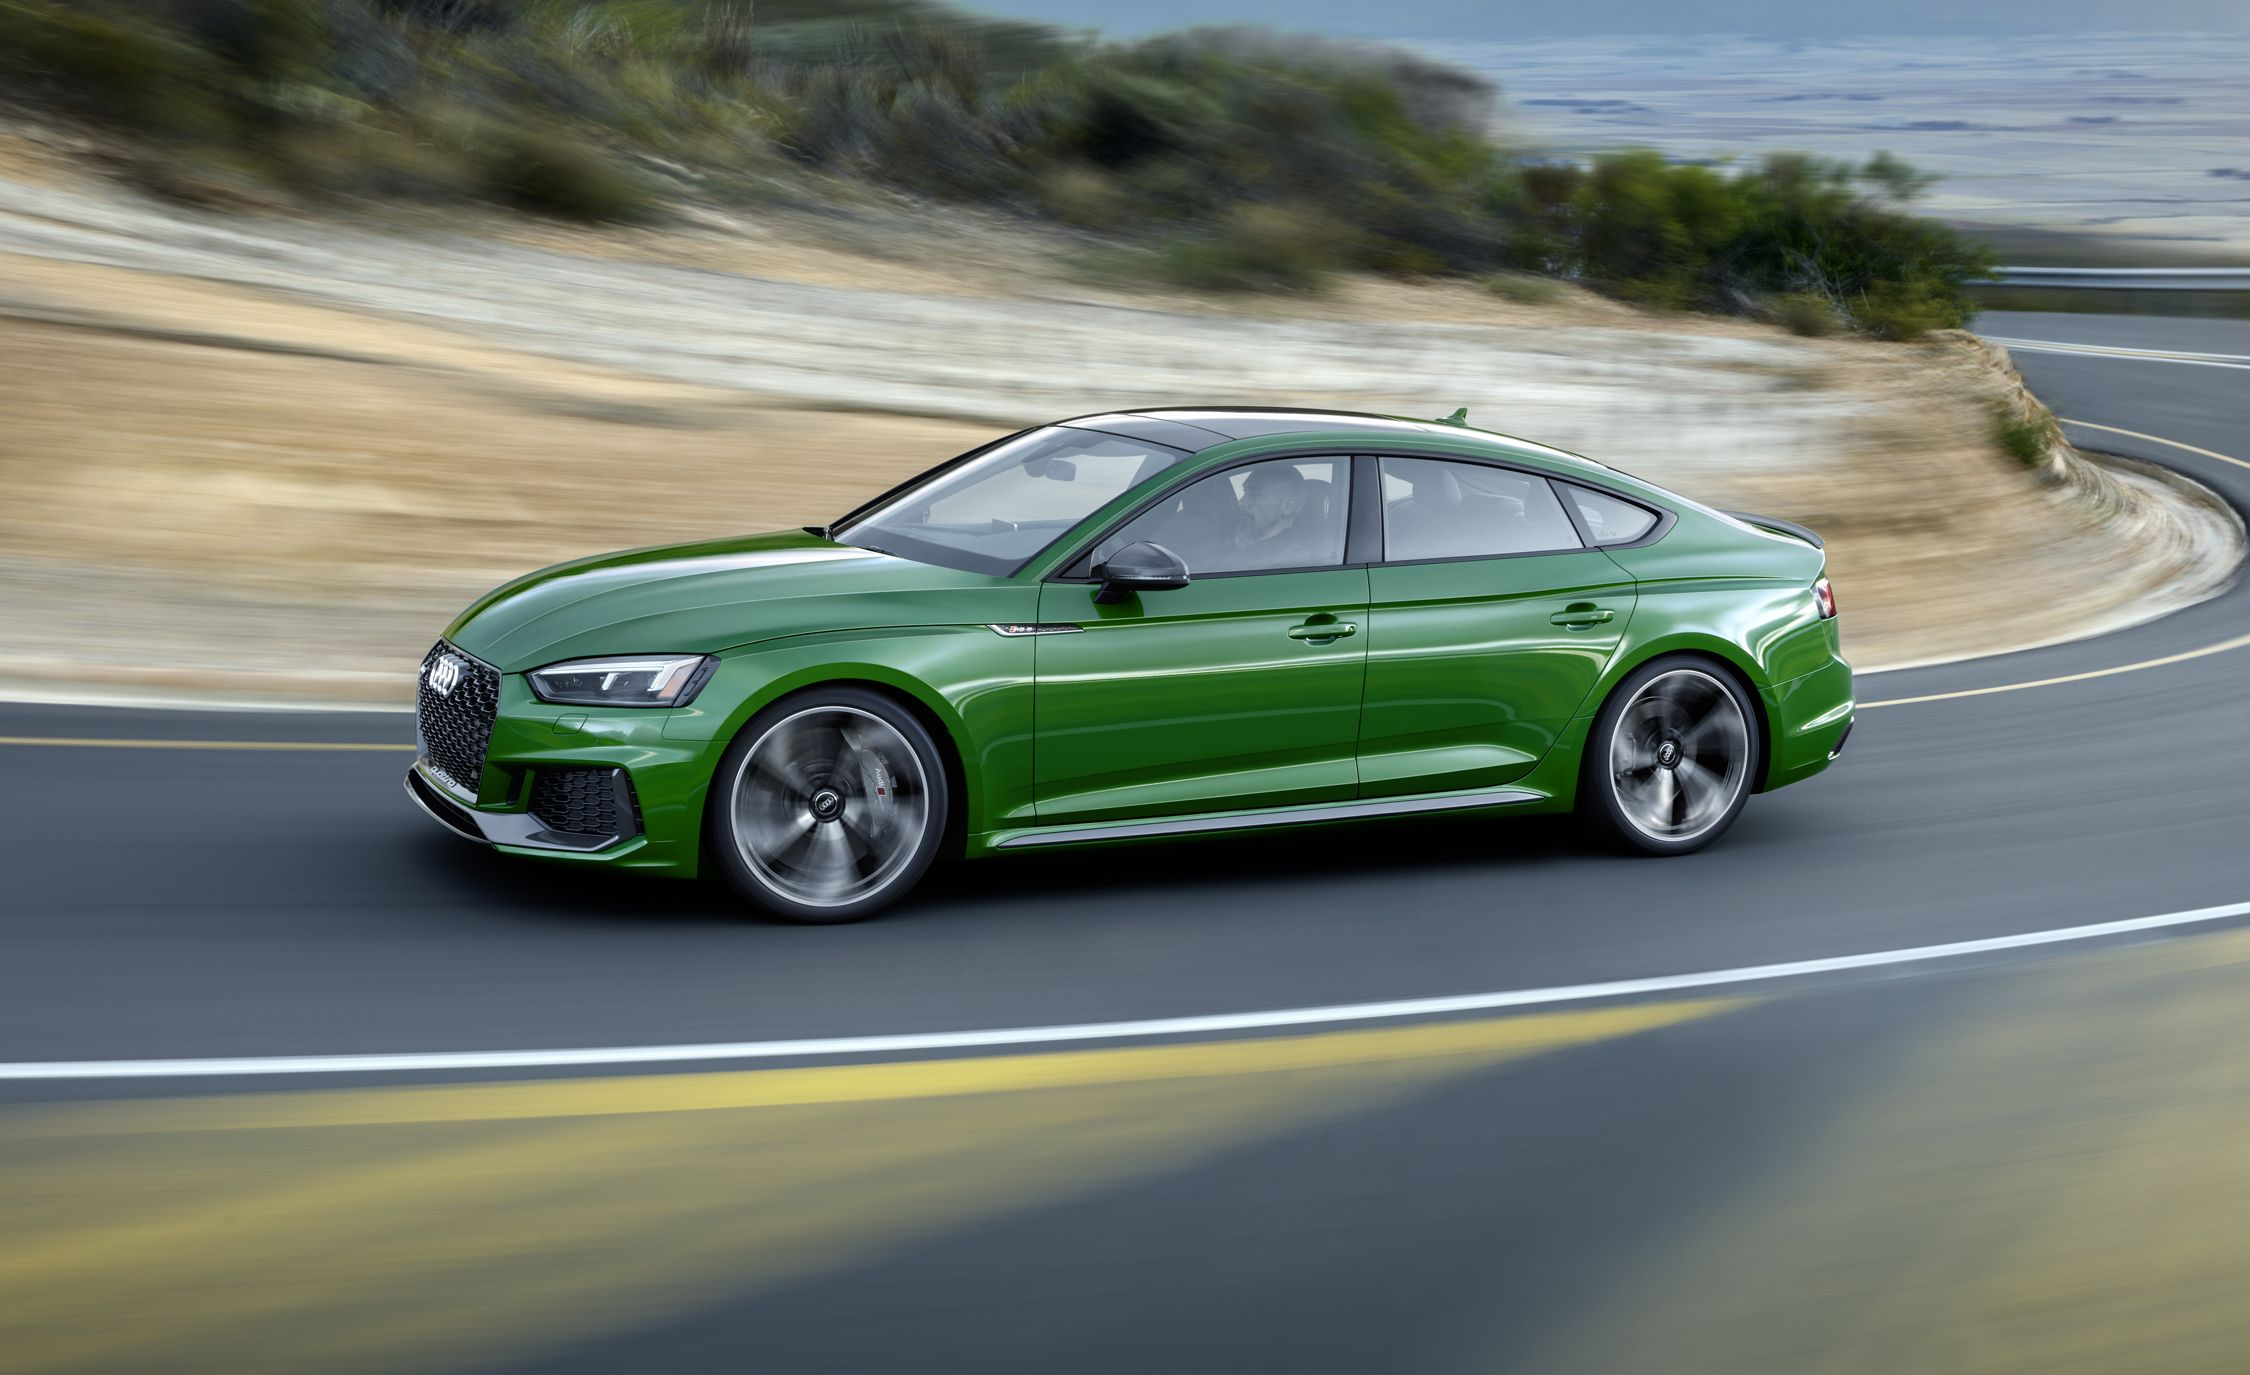 2019 Audi Rs5 Sportback Official Photos And Information